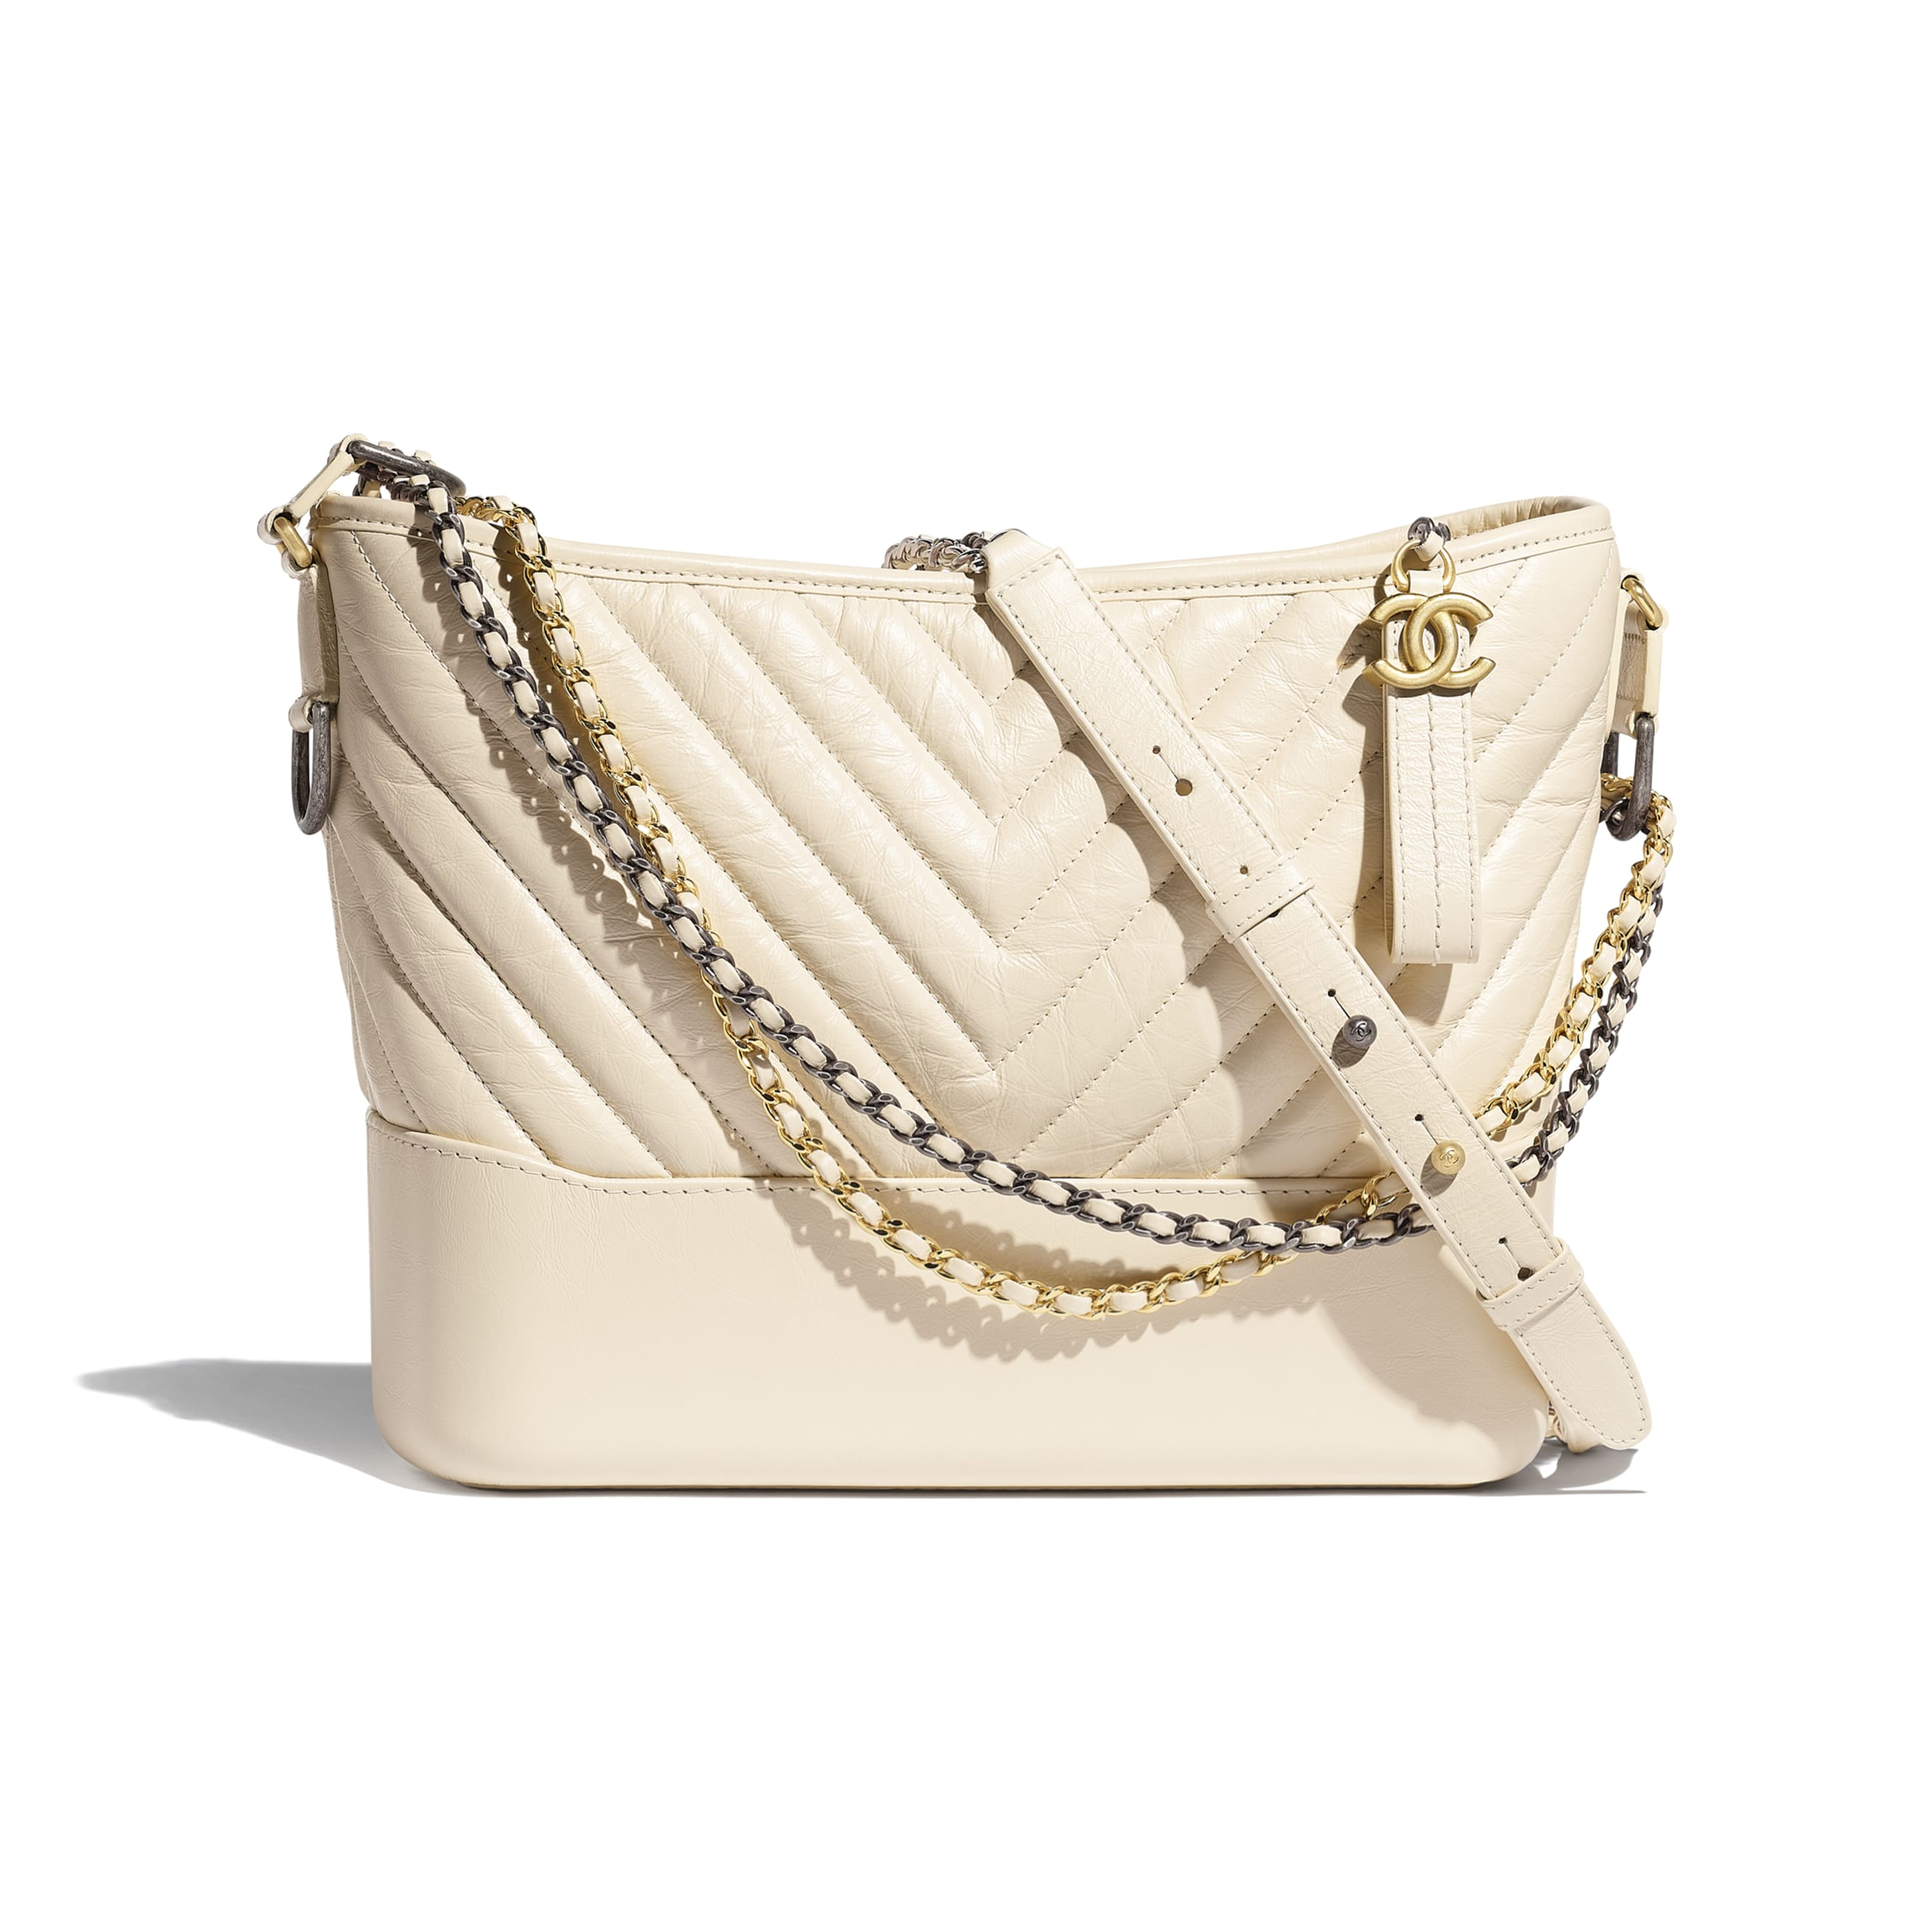 CHANEL'S GABRIELLE Large Hobo Bag - Light Beige - Aged Calfskin, Smooth Calfskin, Gold-Tone, Silver-Tone & Ruthenium-Finish Metal - CHANEL - Default view - see standard sized version